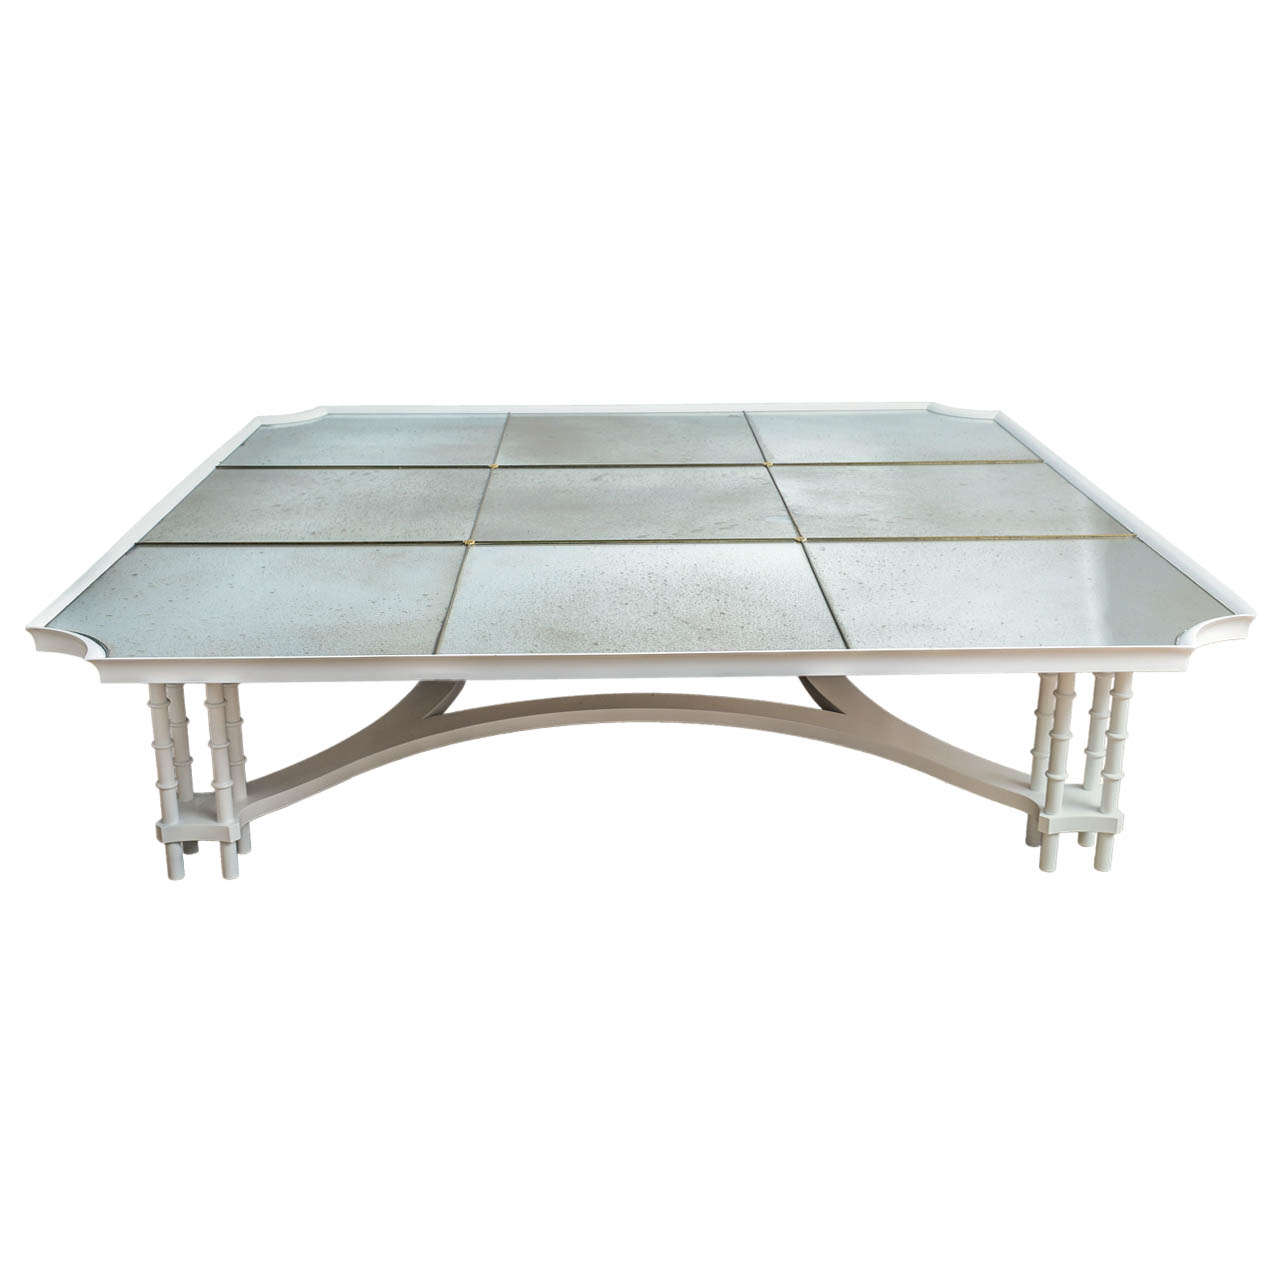 Large Nine Panel Glomis Mirrored Top Cocktail Table With Lacquered Base At 1stdibs